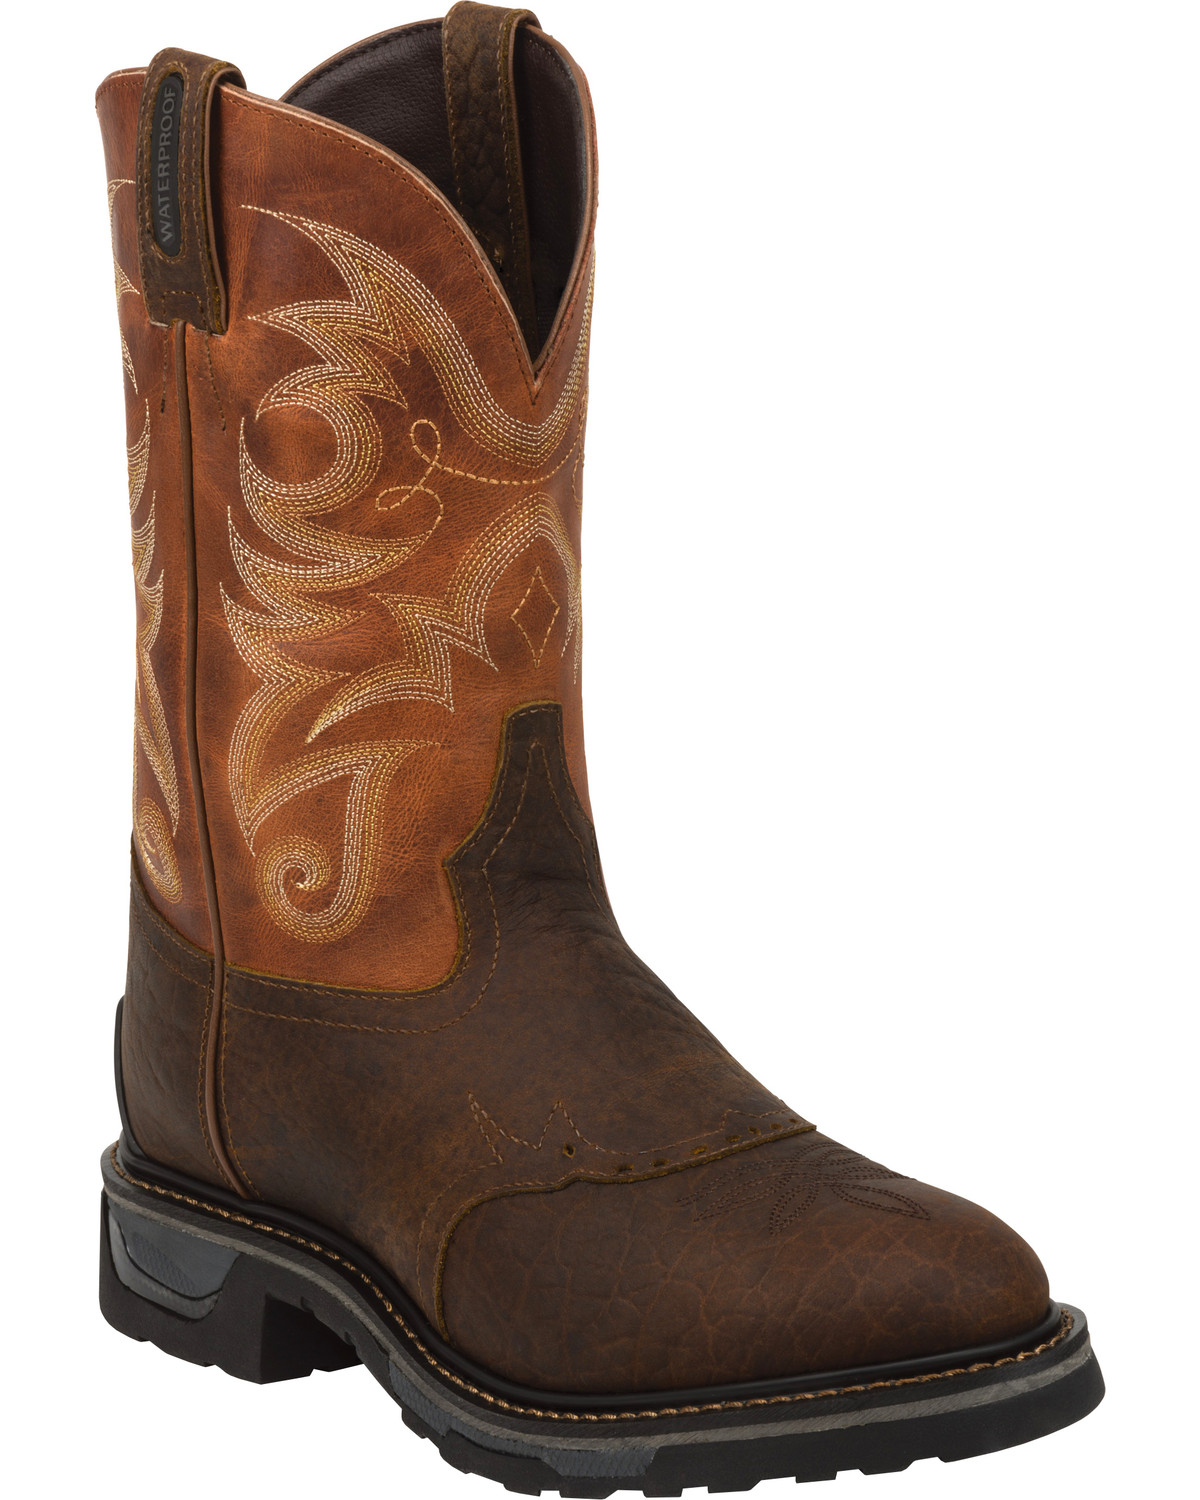 Tony Lama Men S Waterproof Tlx Performance Western Work